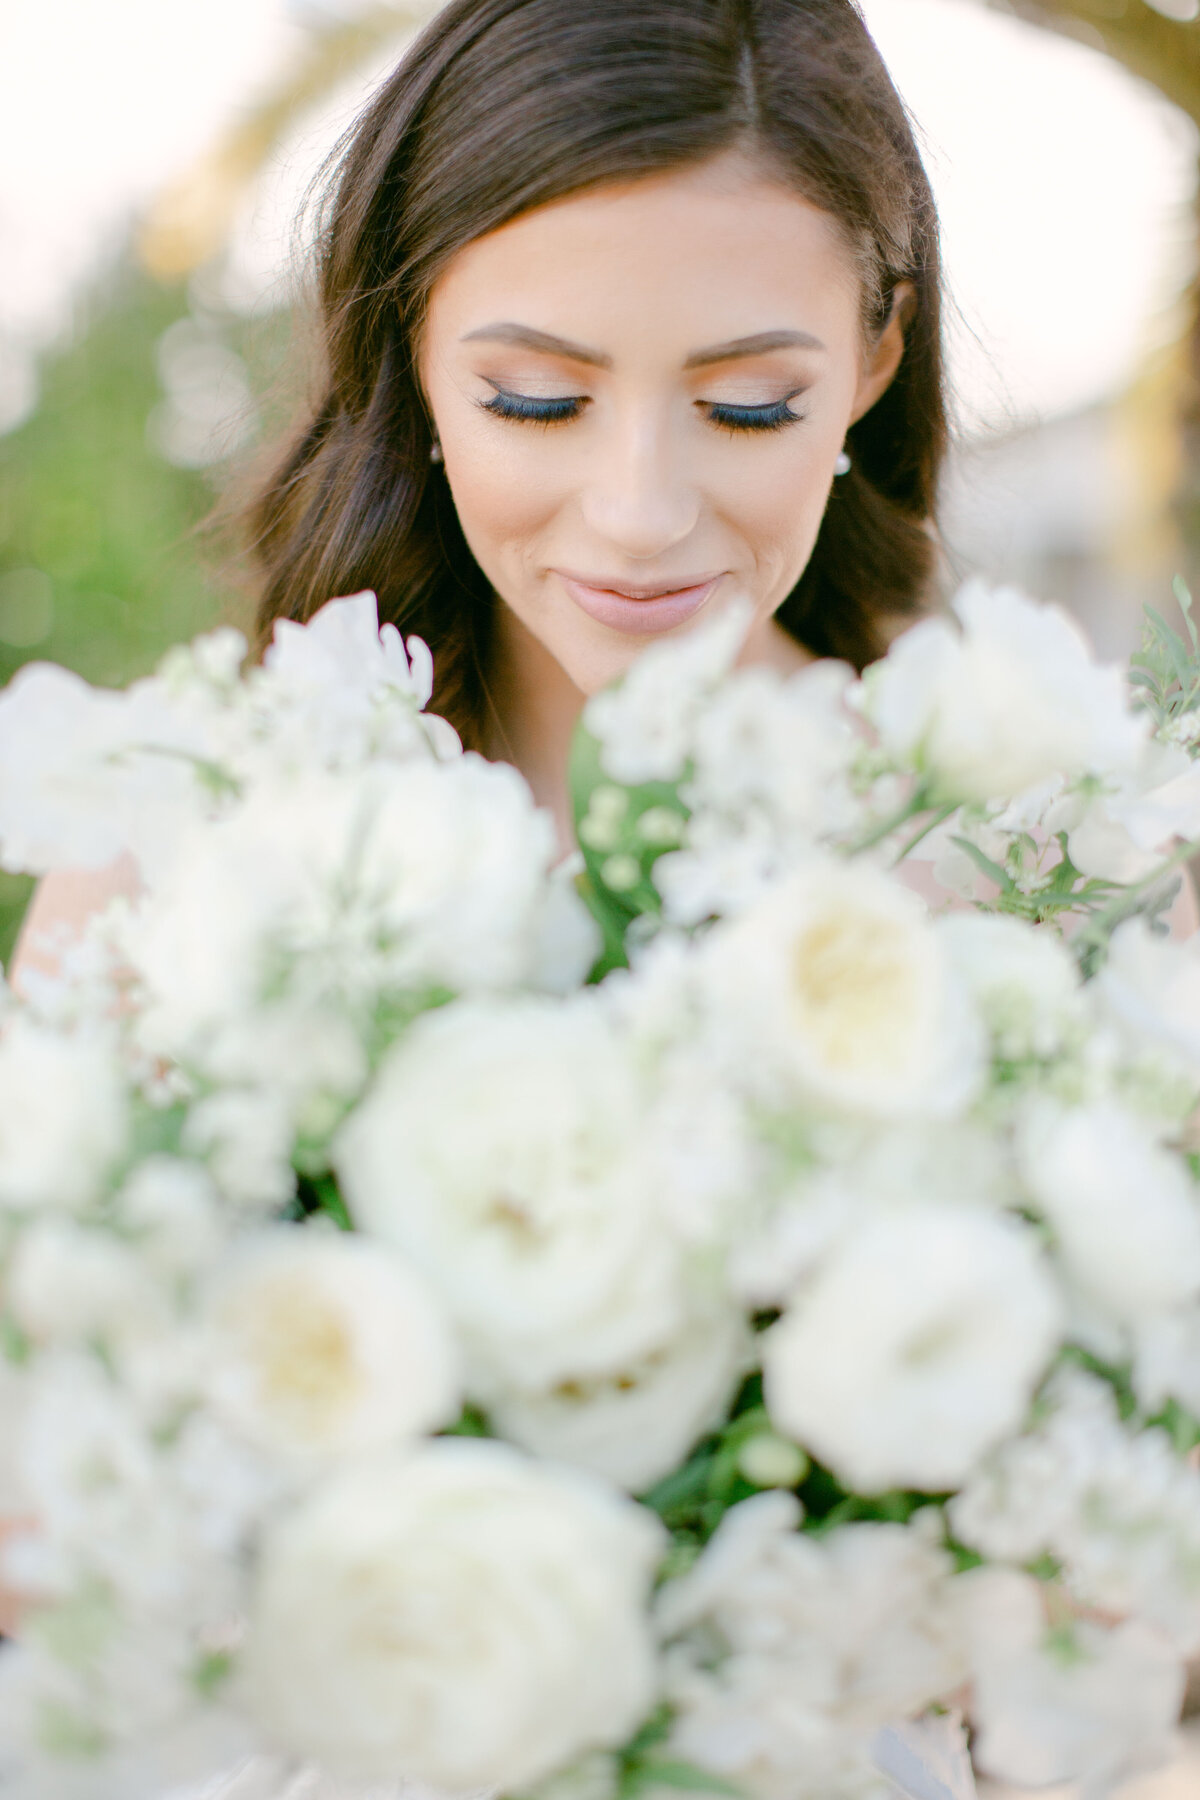 Tretter_Wedding_Carmel_Mountain_Ranch_San_Diego_California_Jacksonville_Florida_Devon_Donnahoo_Photography_0811